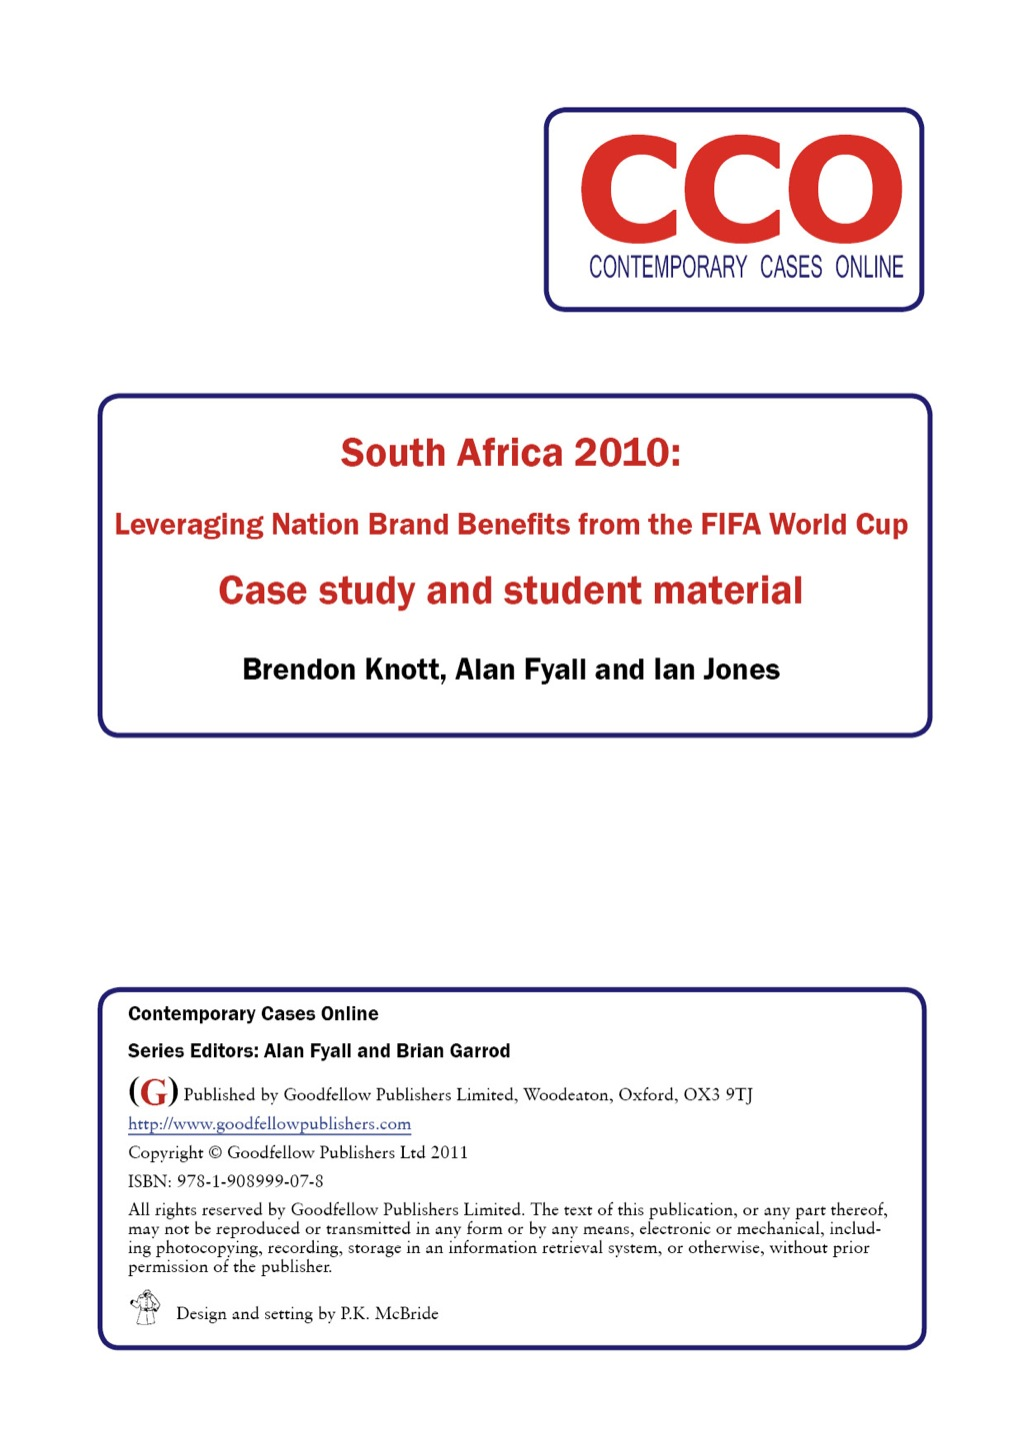 South Africa 2010: Leveraging Nation Brand Benefits from the FIFA World Cup (ebook) eBooks